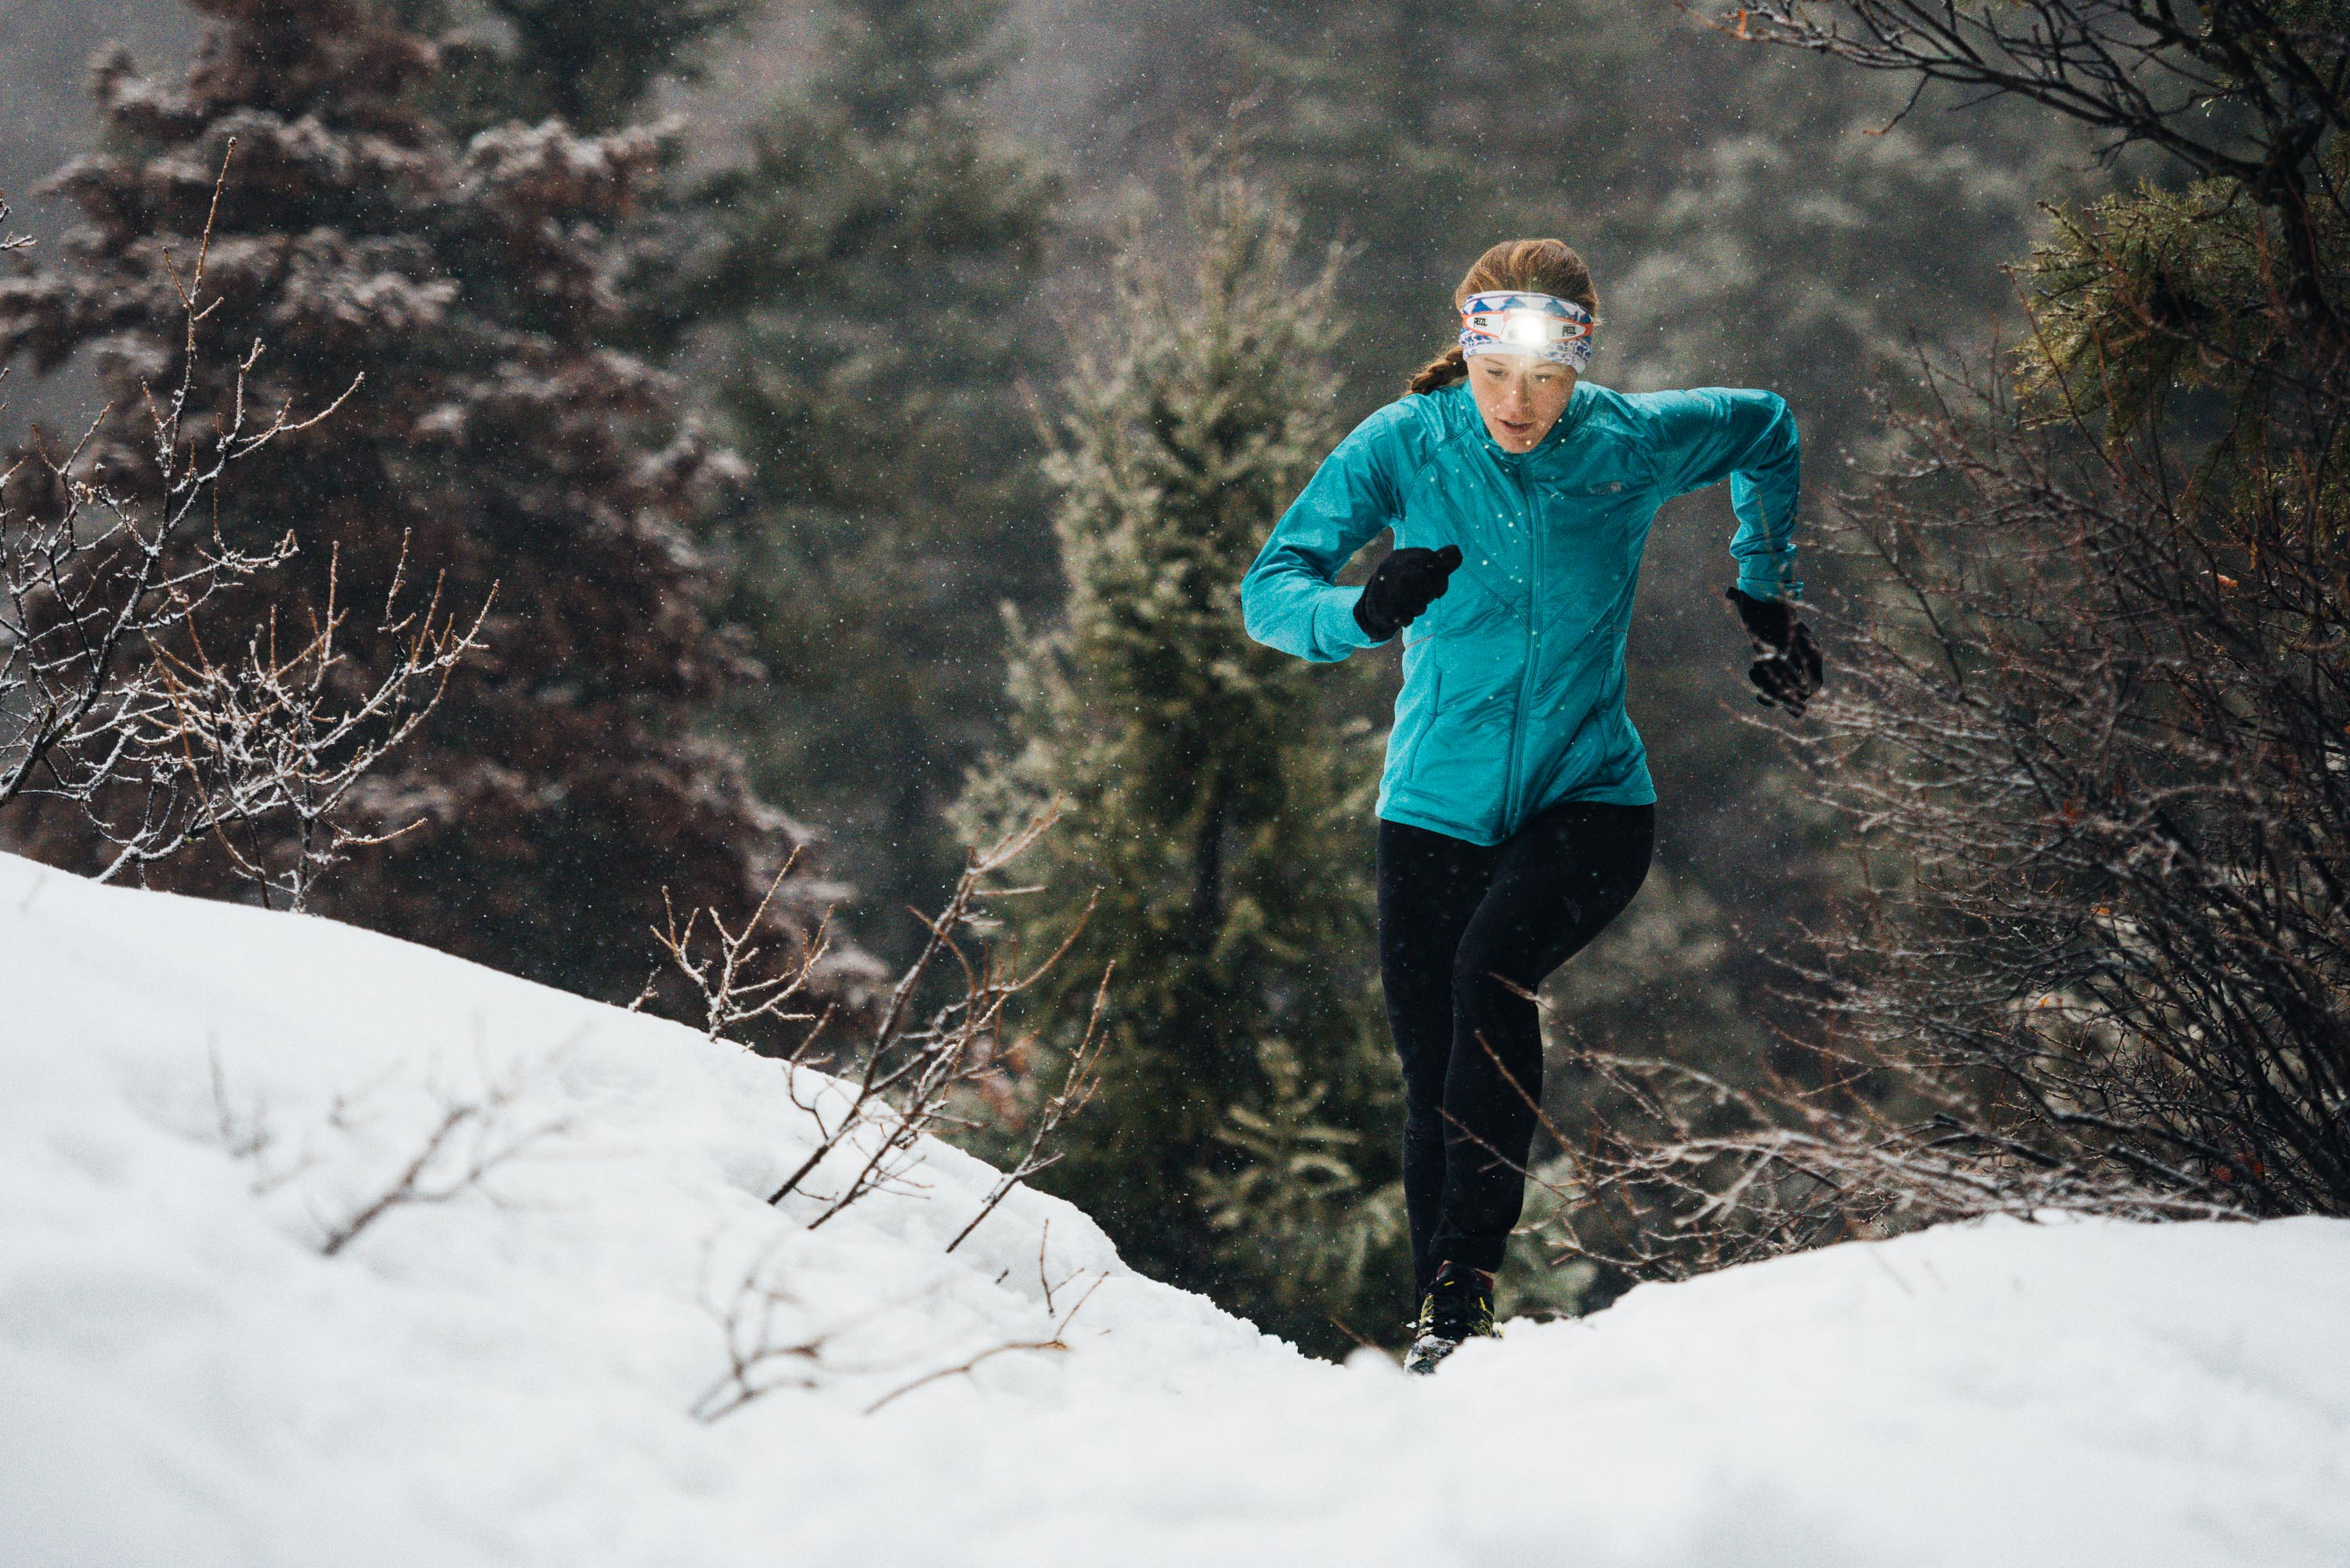 Winter Run for The North Face - Greg Mionske - Advertising and Editorial Photographer in Denver